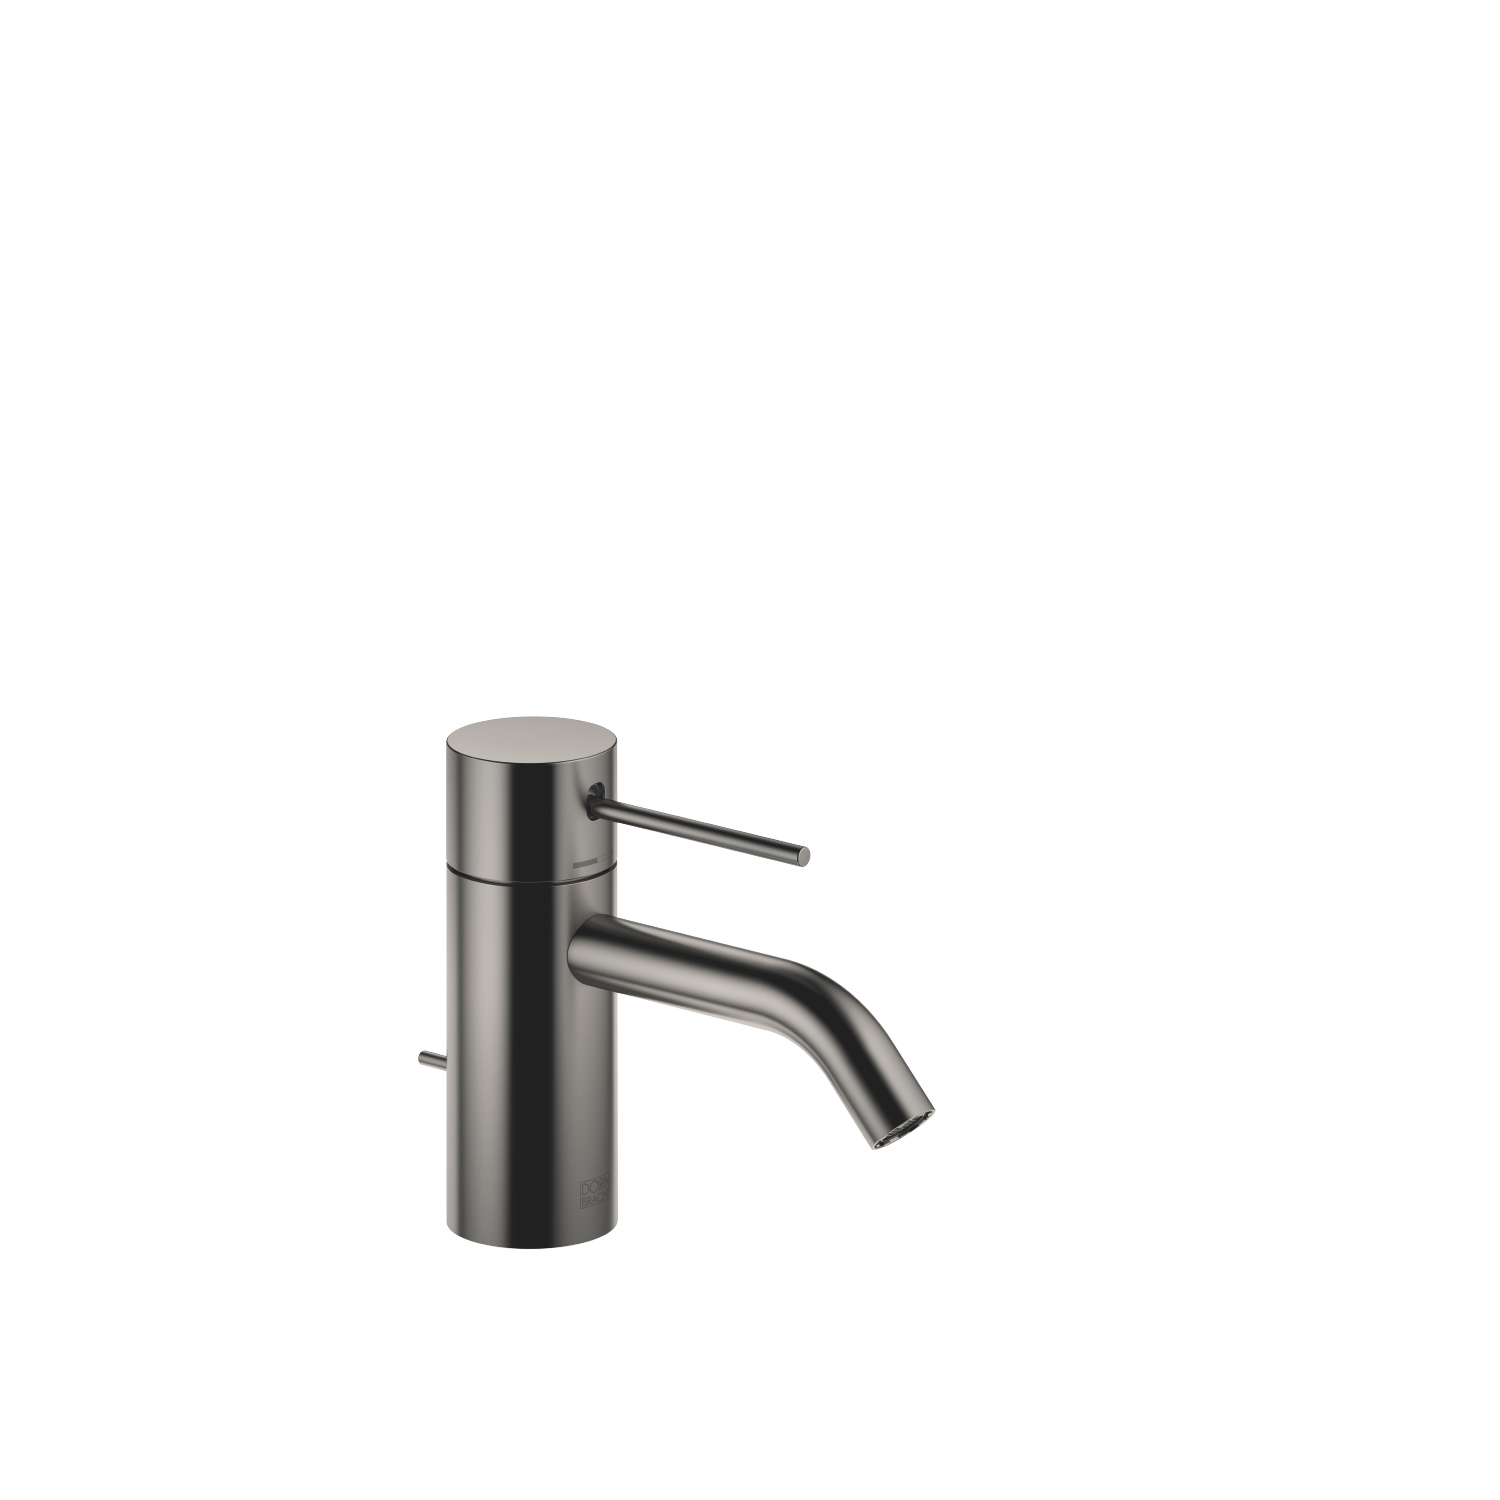 META SLIM Single-lever basin mixer with pop-up waste - Dark Platinum matt